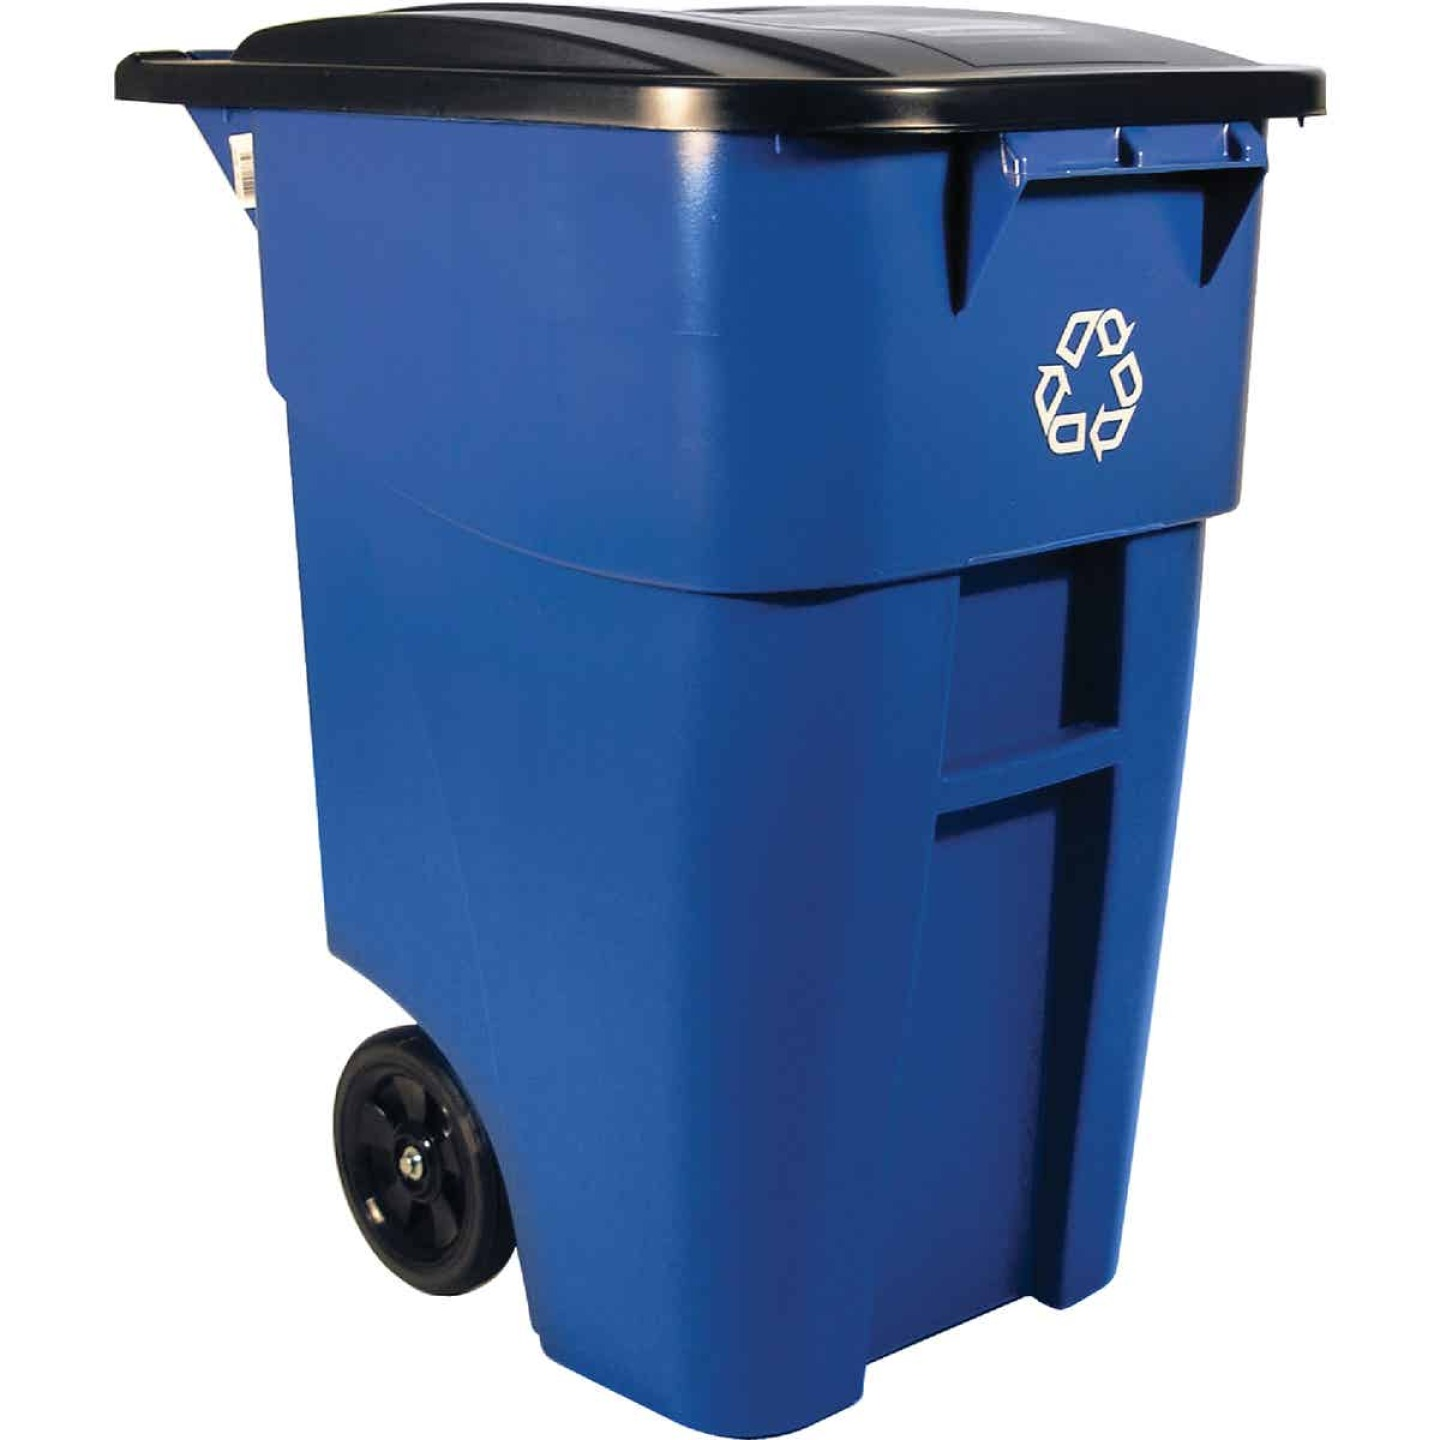 Rubbermaid 50 Gal. Recycling Trash Can with Lid Image 1